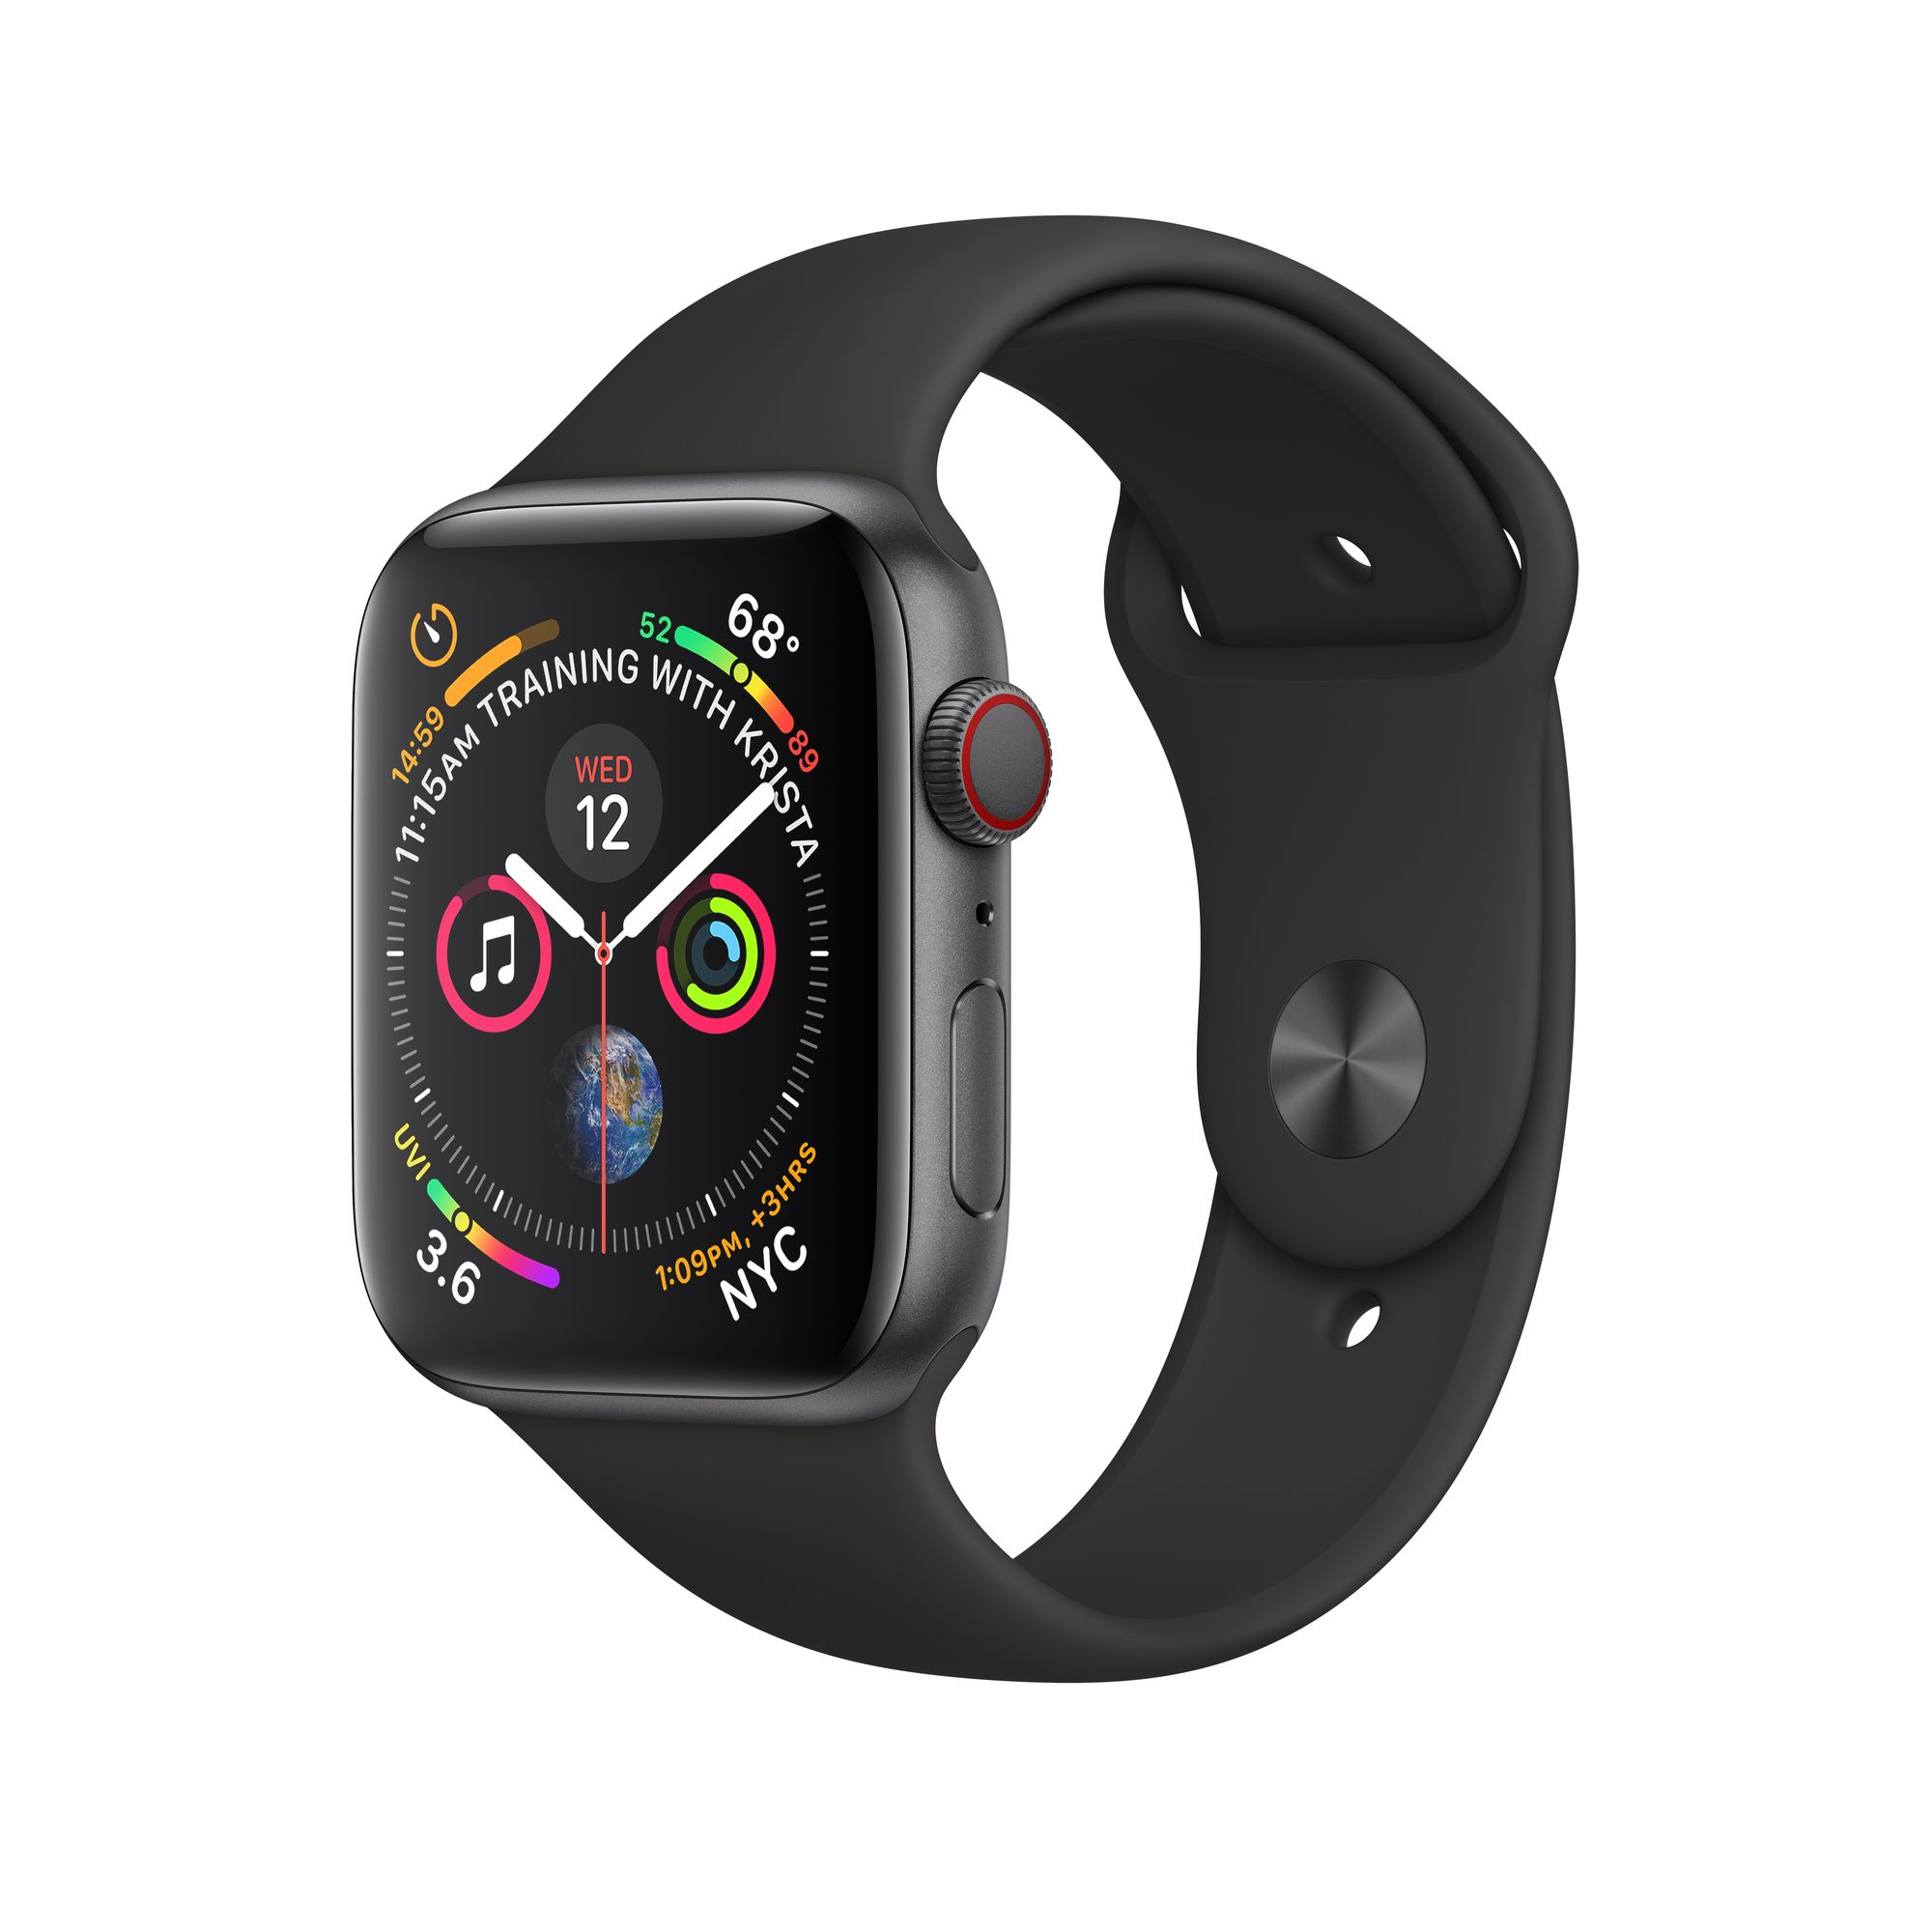 separation shoes 56be3 1be6b Apple Watch Series 4 GPS + Cellular, 40mm Space Gray Aluminum Case with  Black Sport Band